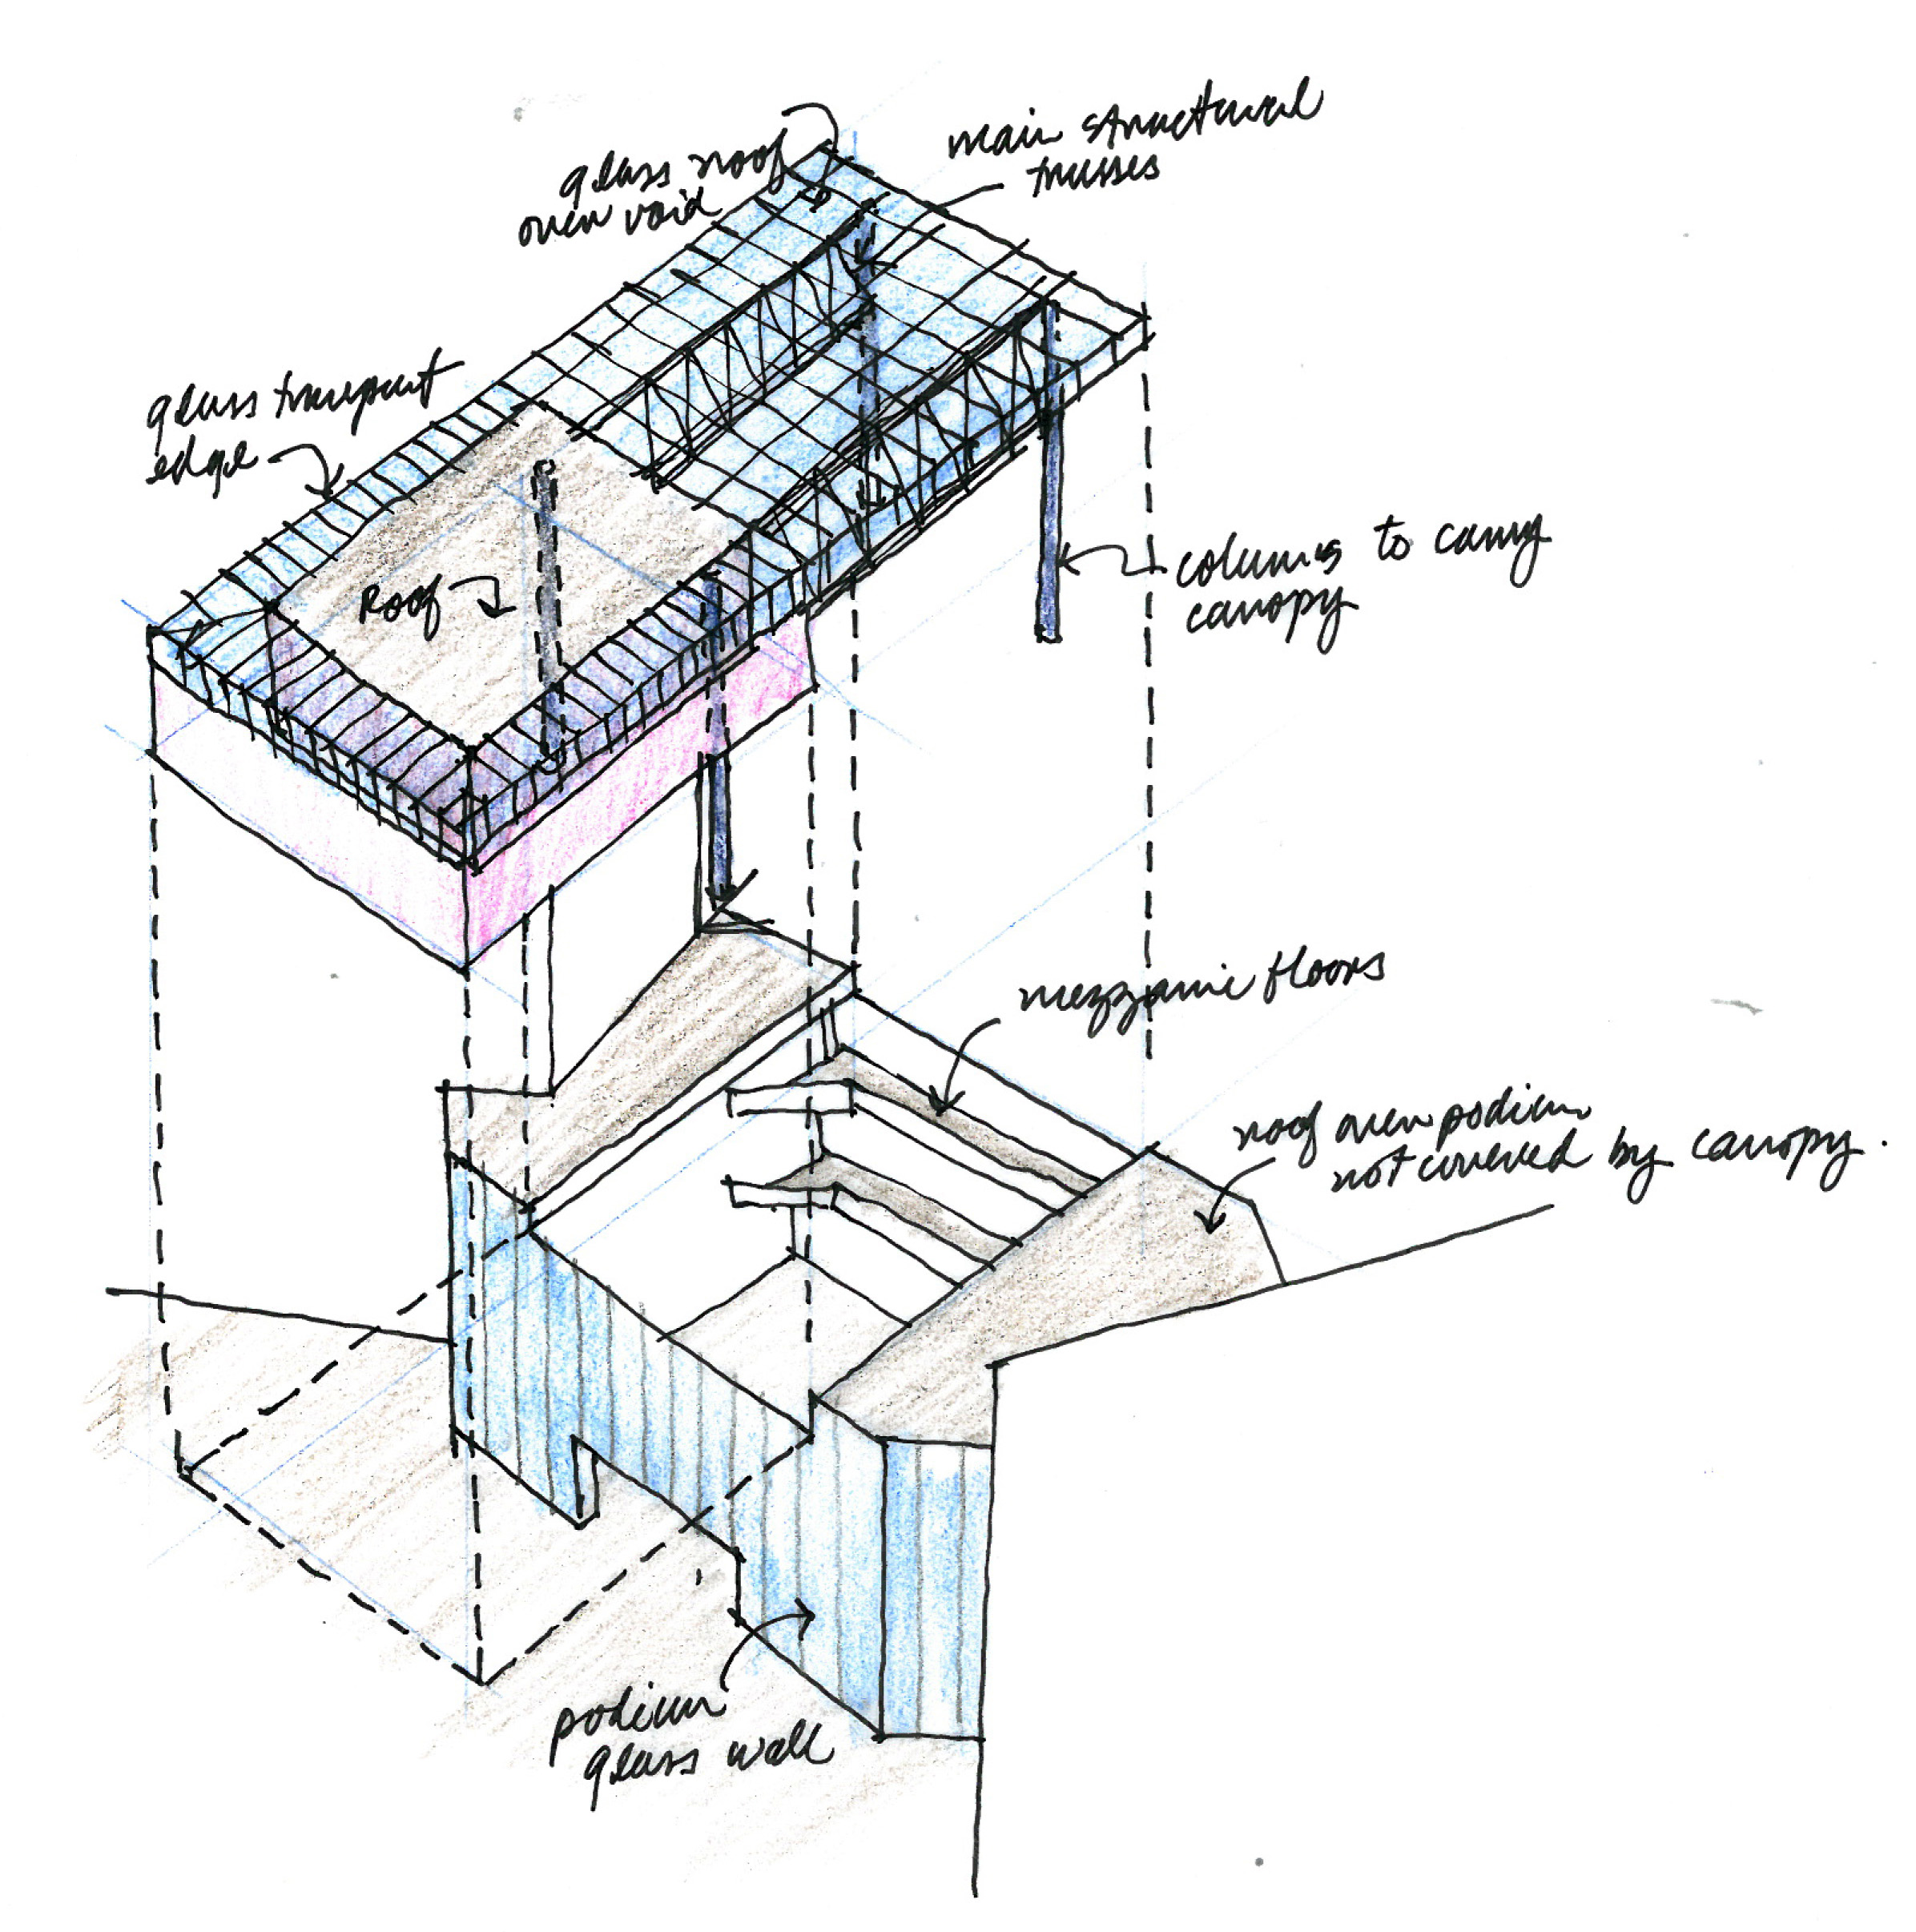 Conceptual Architectural Sketching | Sketchingjourney's Blog